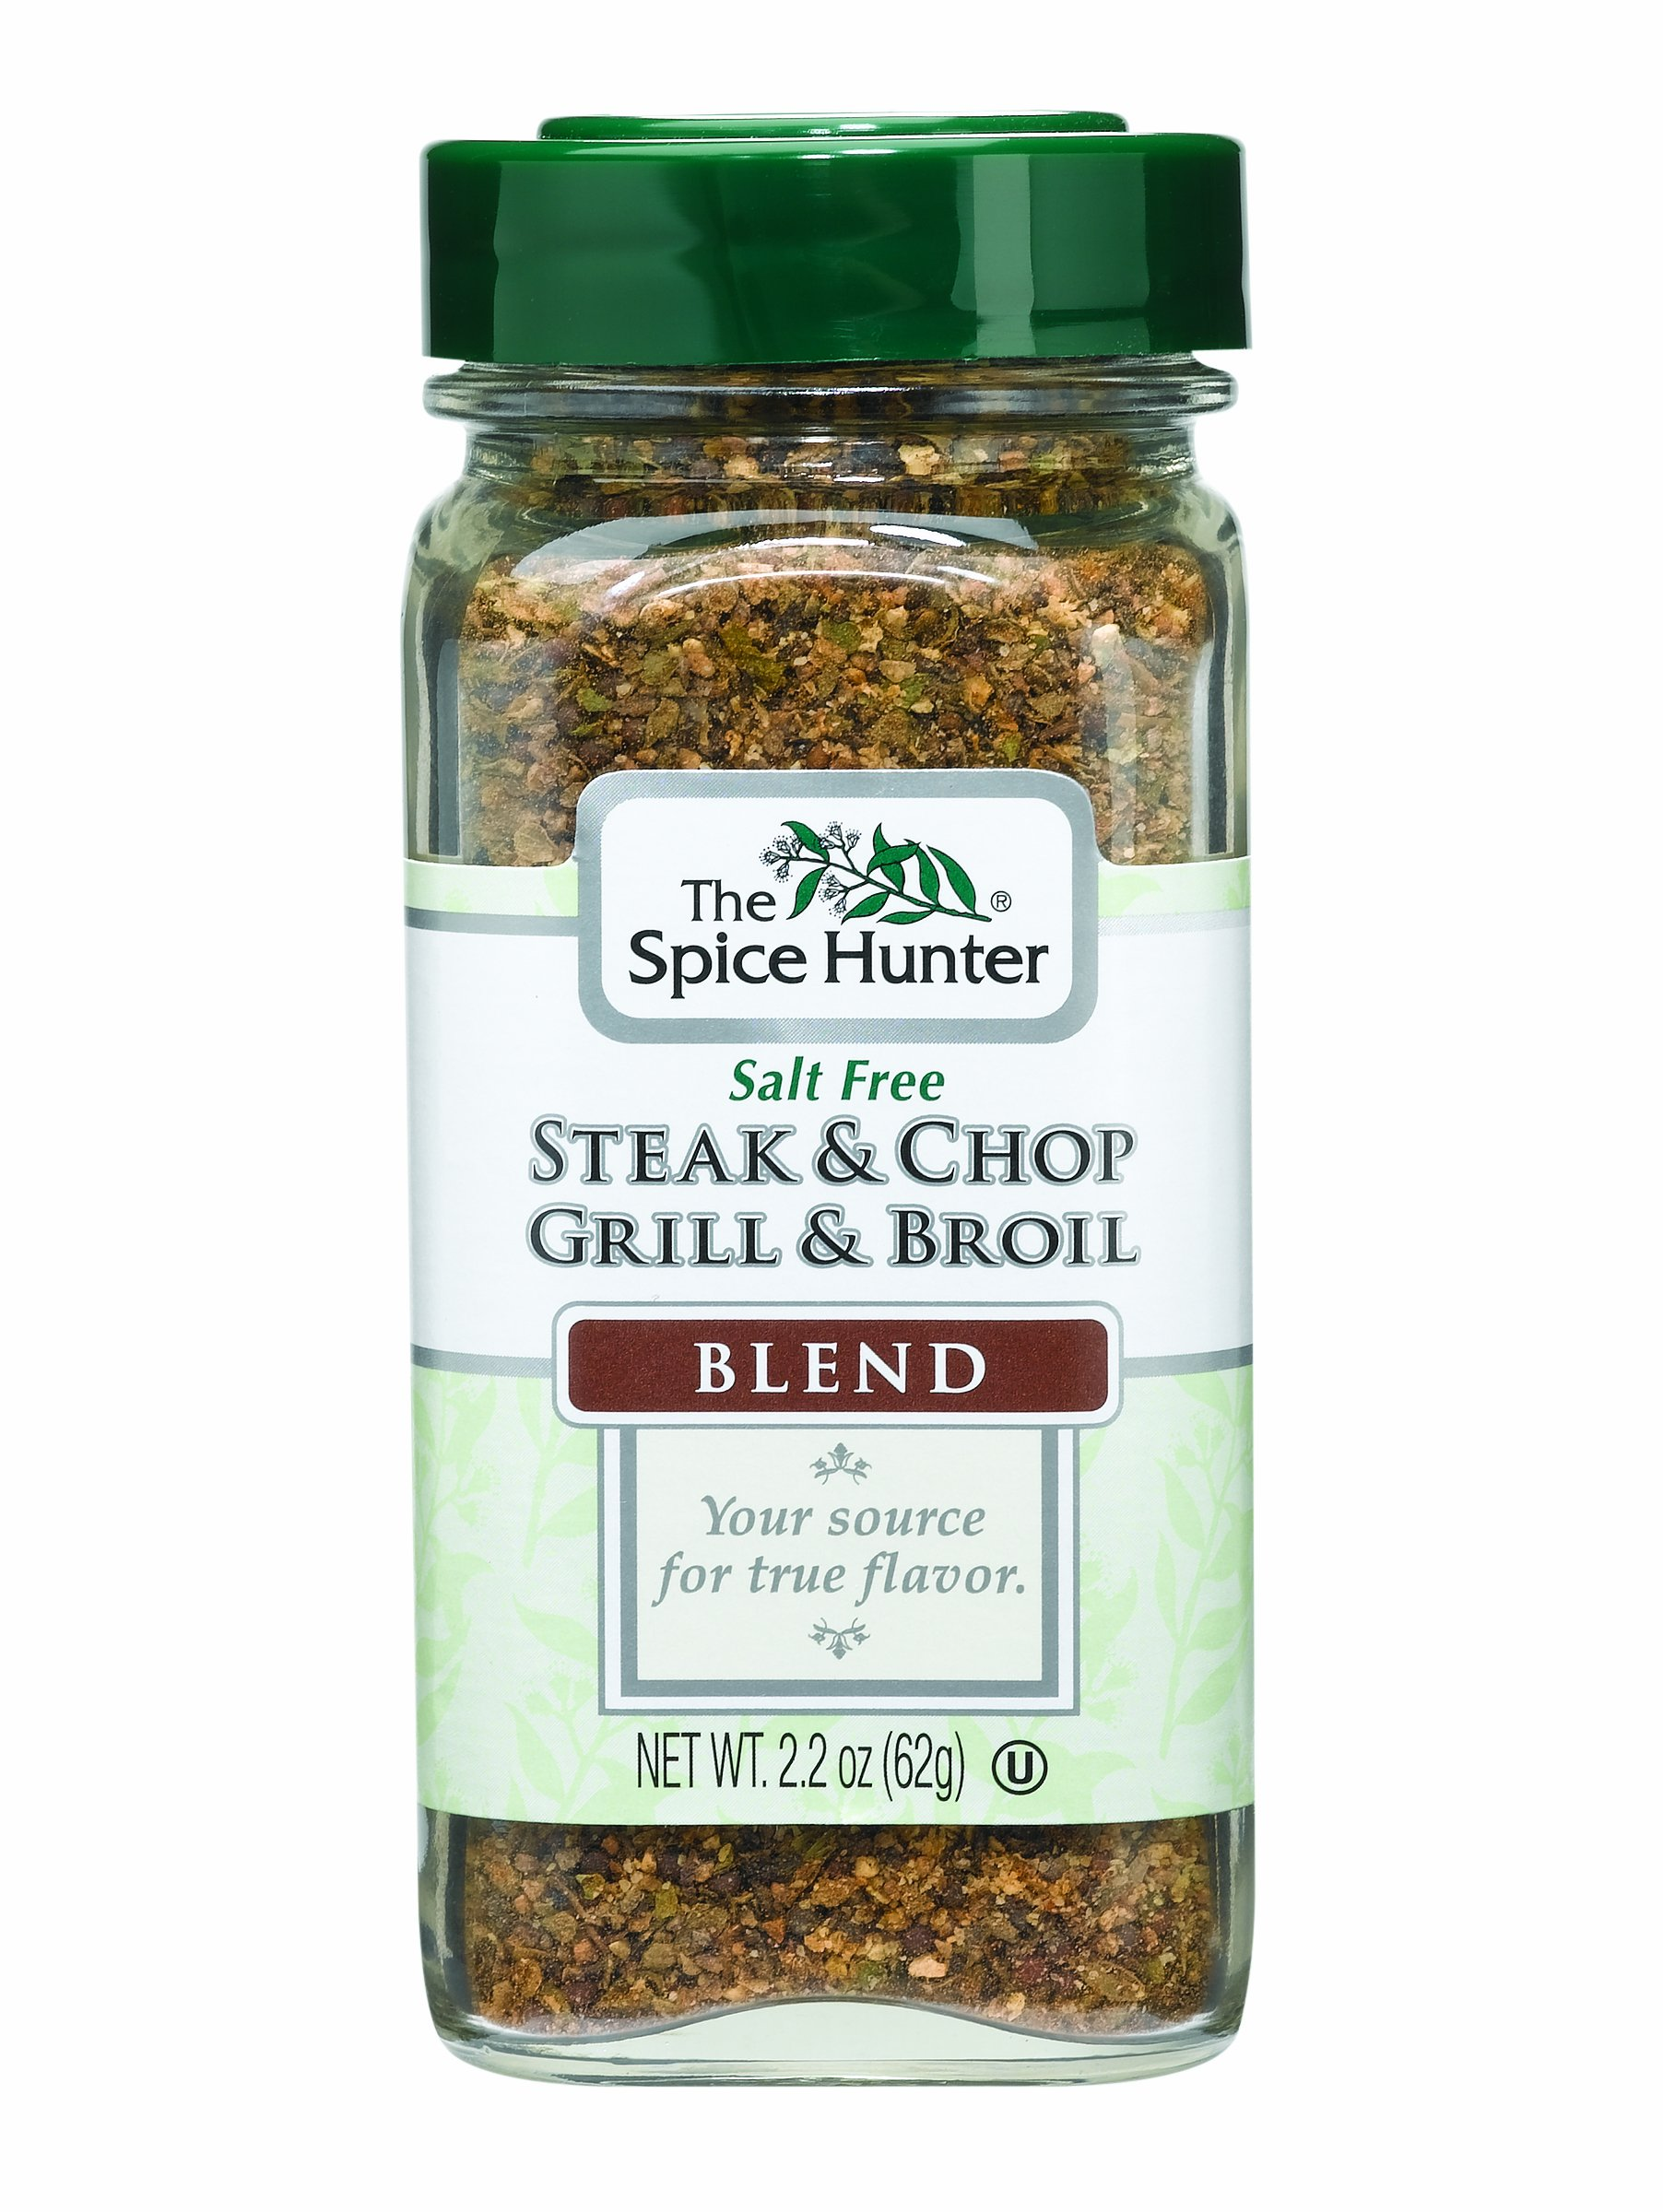 The Spice Hunter Steak & Chop Grill & Broil Blend, 2.2-Ounce Jar